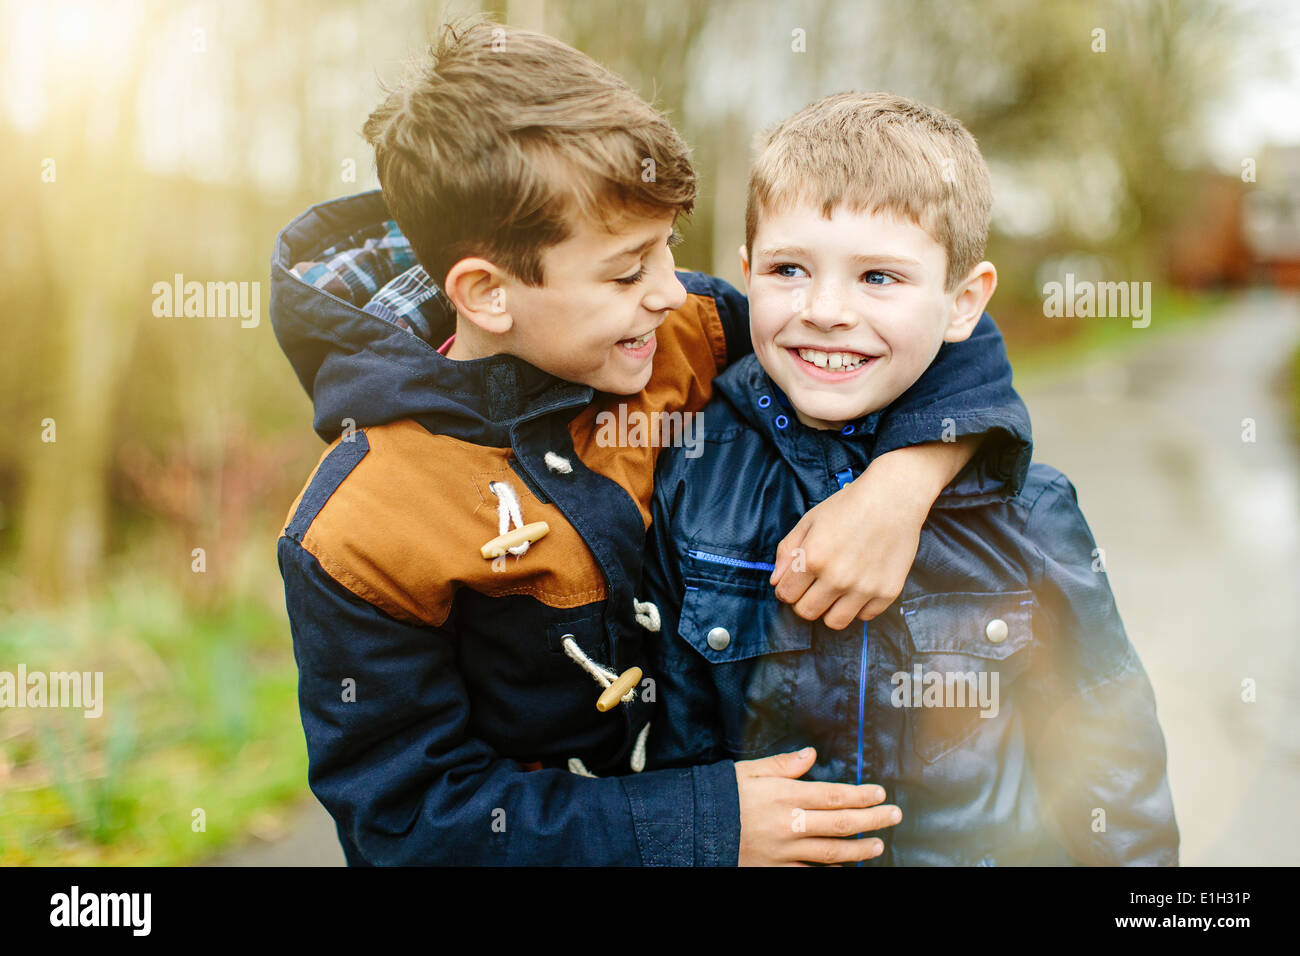 Brothers hugging outdoors - Stock Image